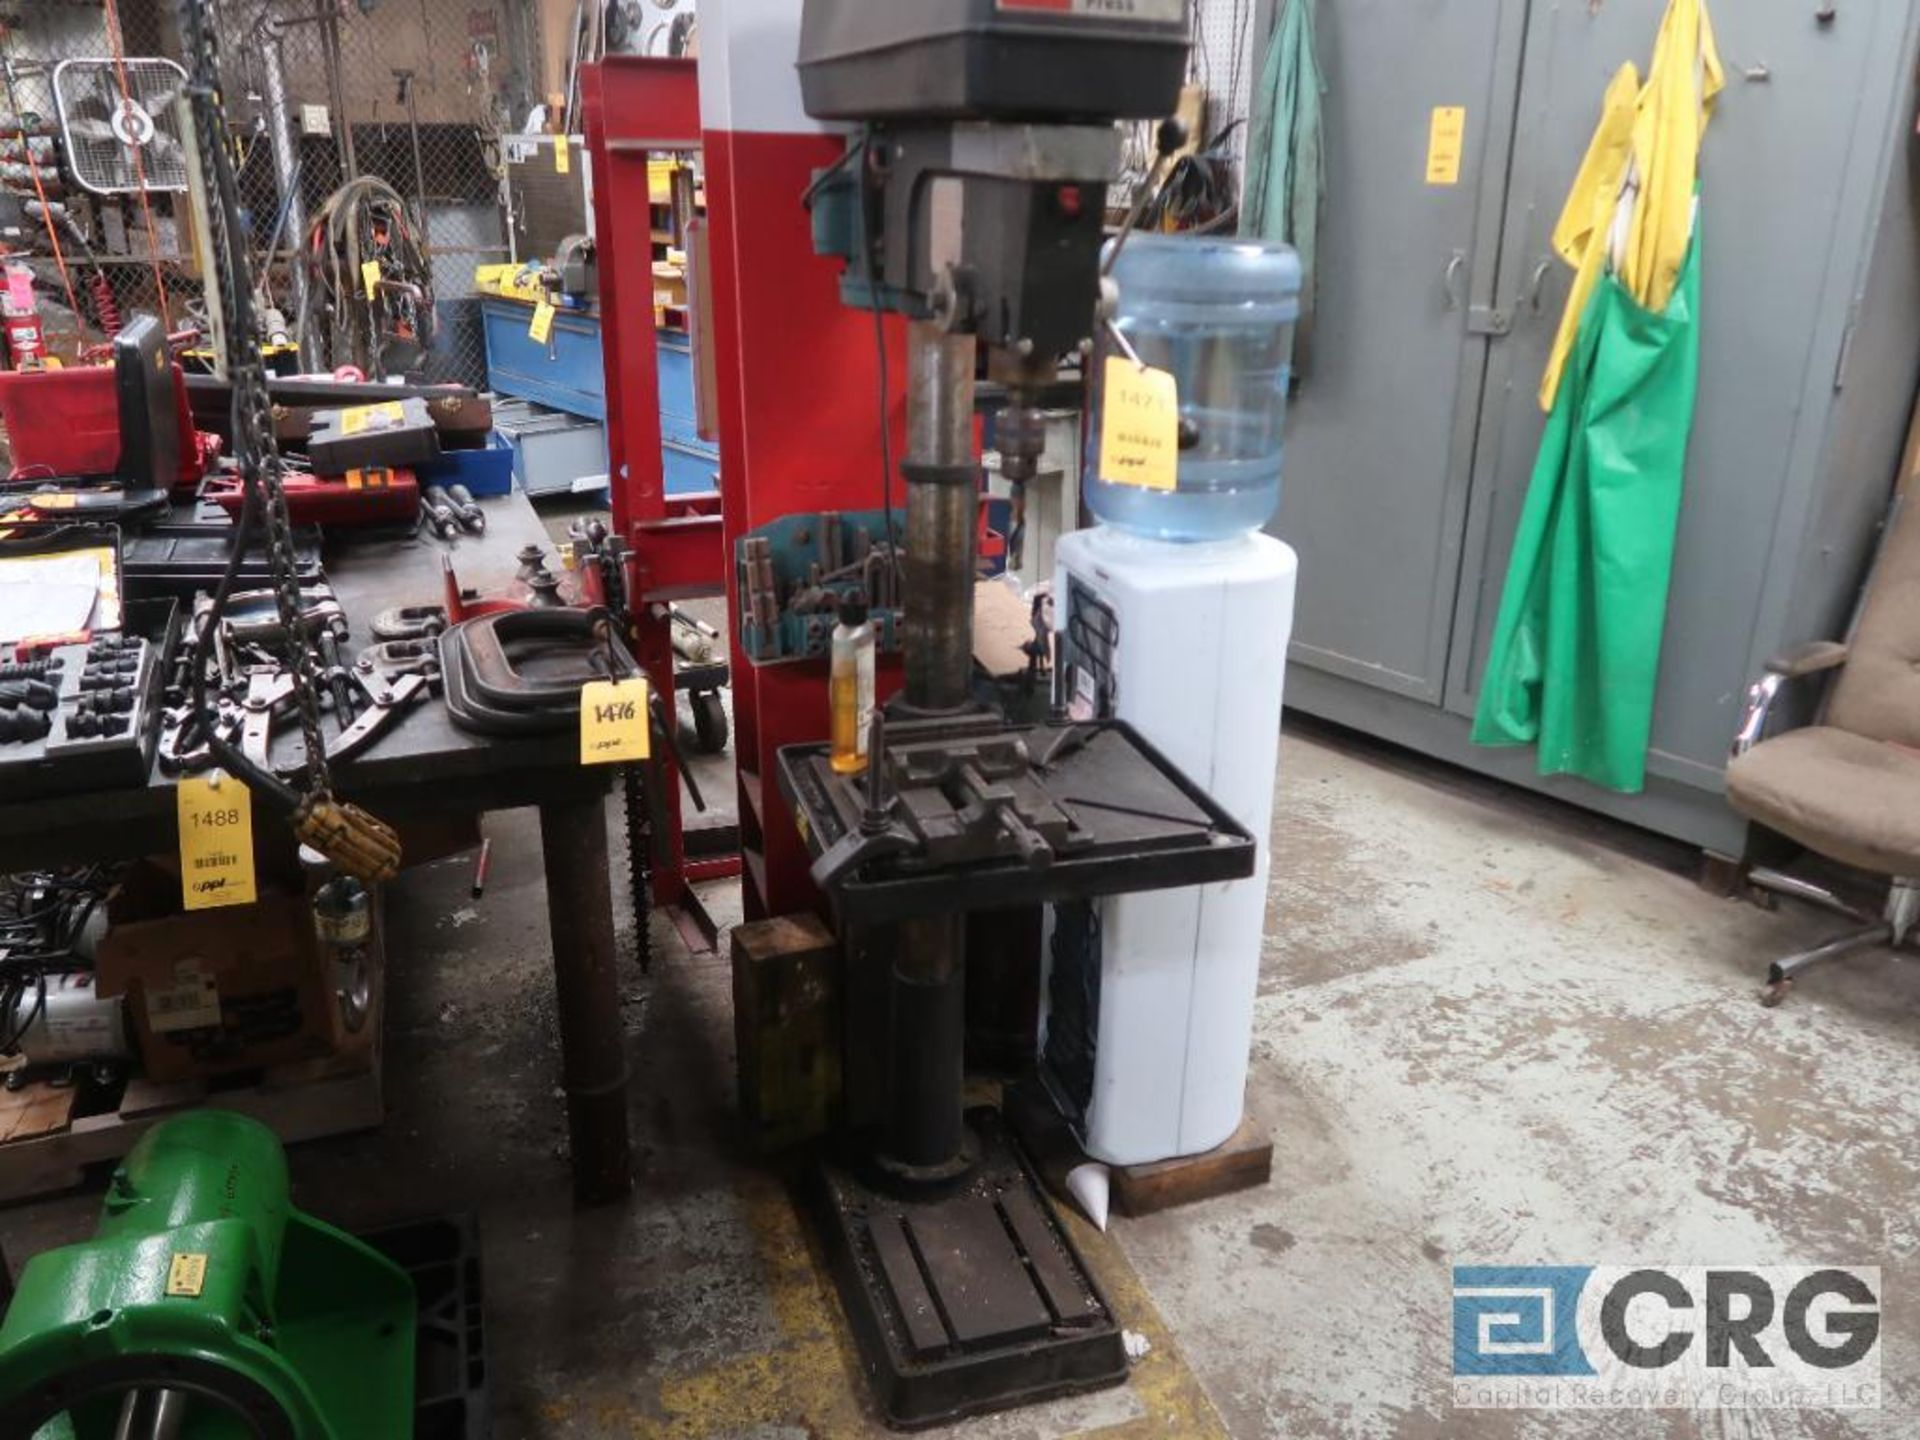 Dayton 20 in. pedestal drill press with vice, 115 volt (Basement Stores) - Image 2 of 3